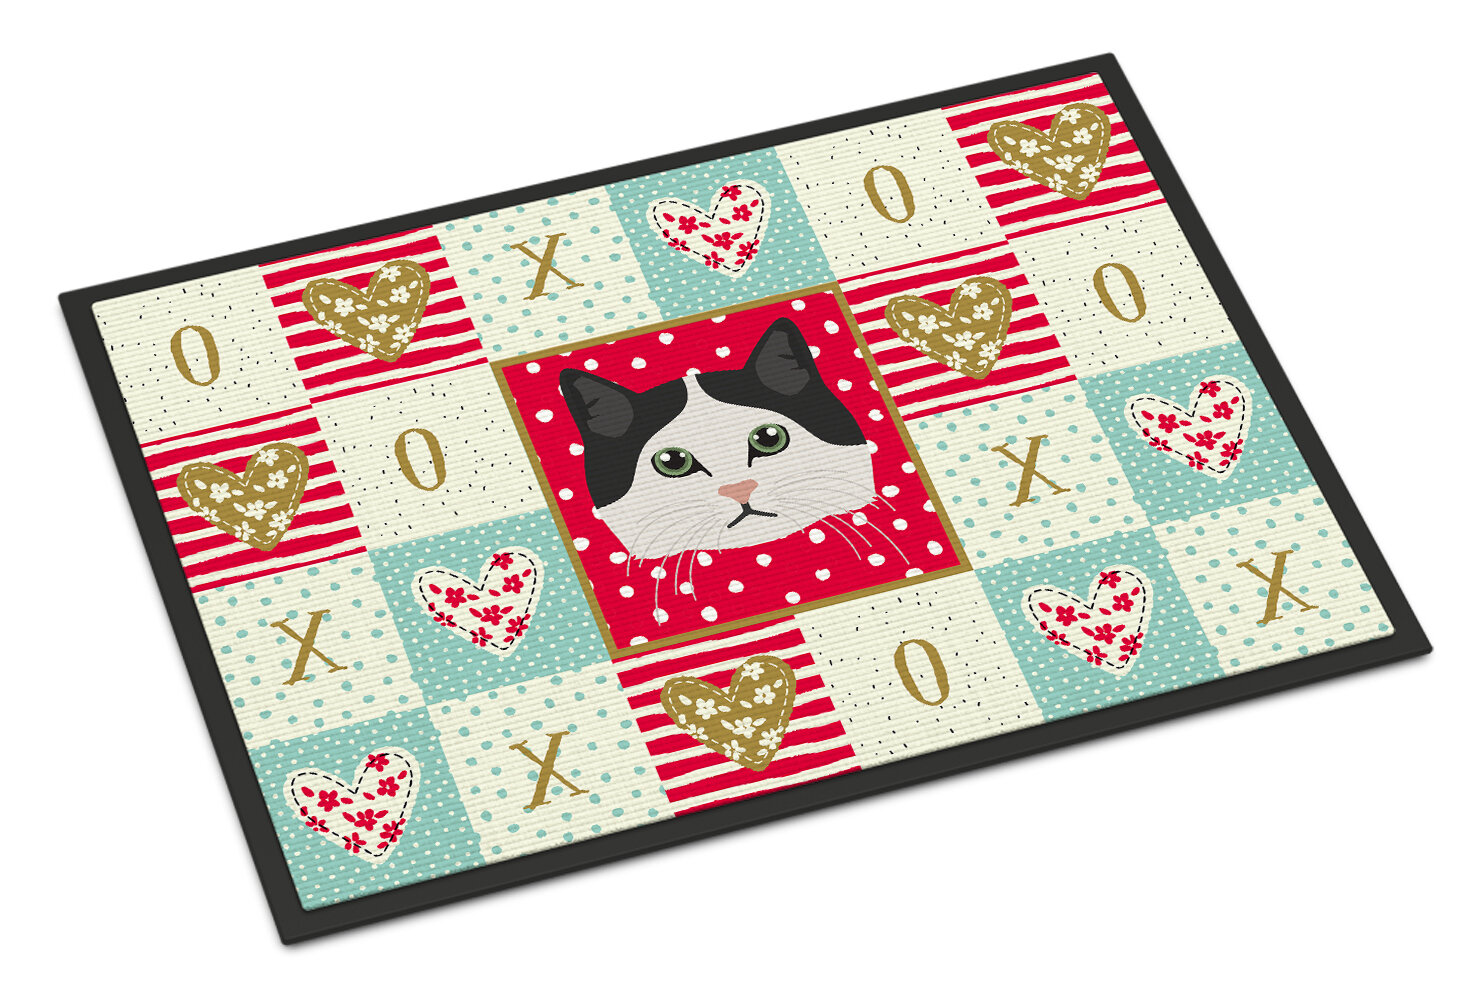 The Holiday Aisle Dalessio Ragamuffin Cat 36 In X 24 In Non Slip Indoor Outdoor Door Mat Wayfair